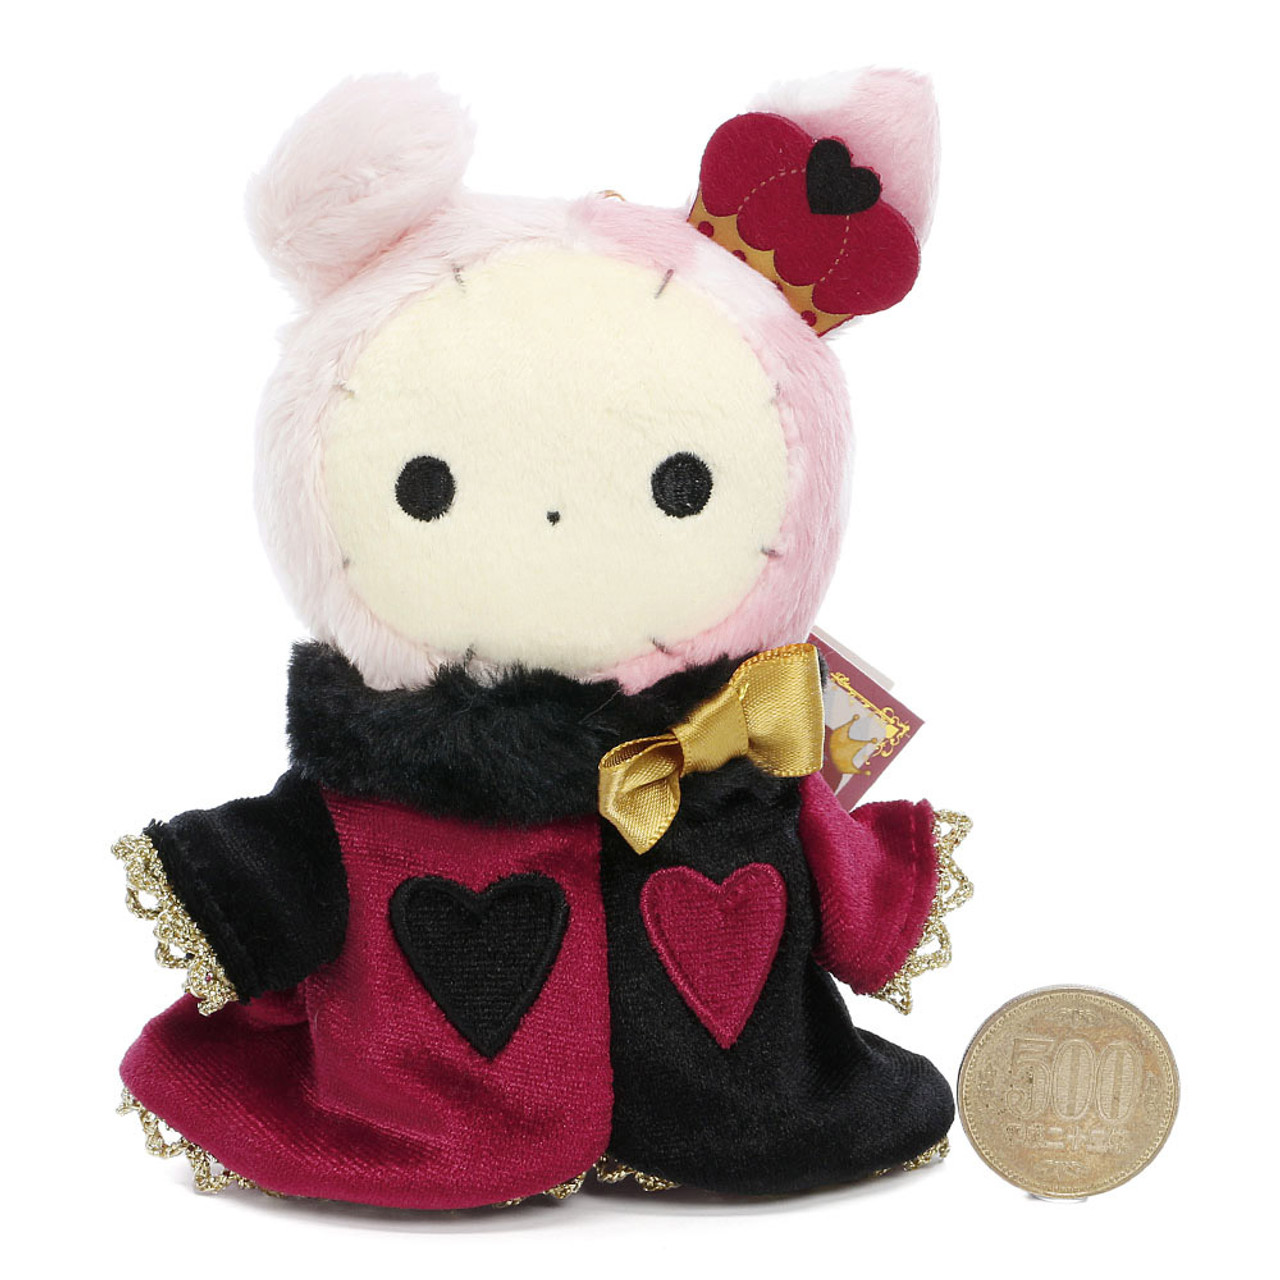 San-x Sentimental Circus Shappo Bunny Queen of Hearts Plush Doll Charms ( Proportion View )